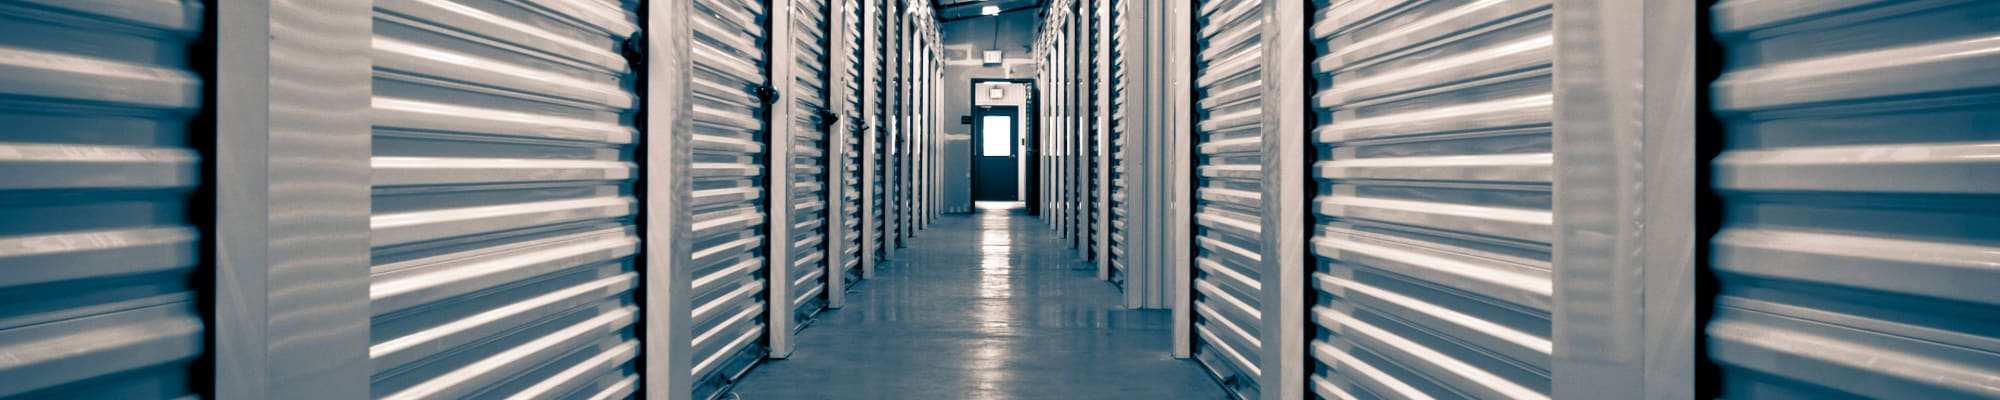 Store It All Self Storage - Barnegat storage units for rent in Barnegat, New Jersey